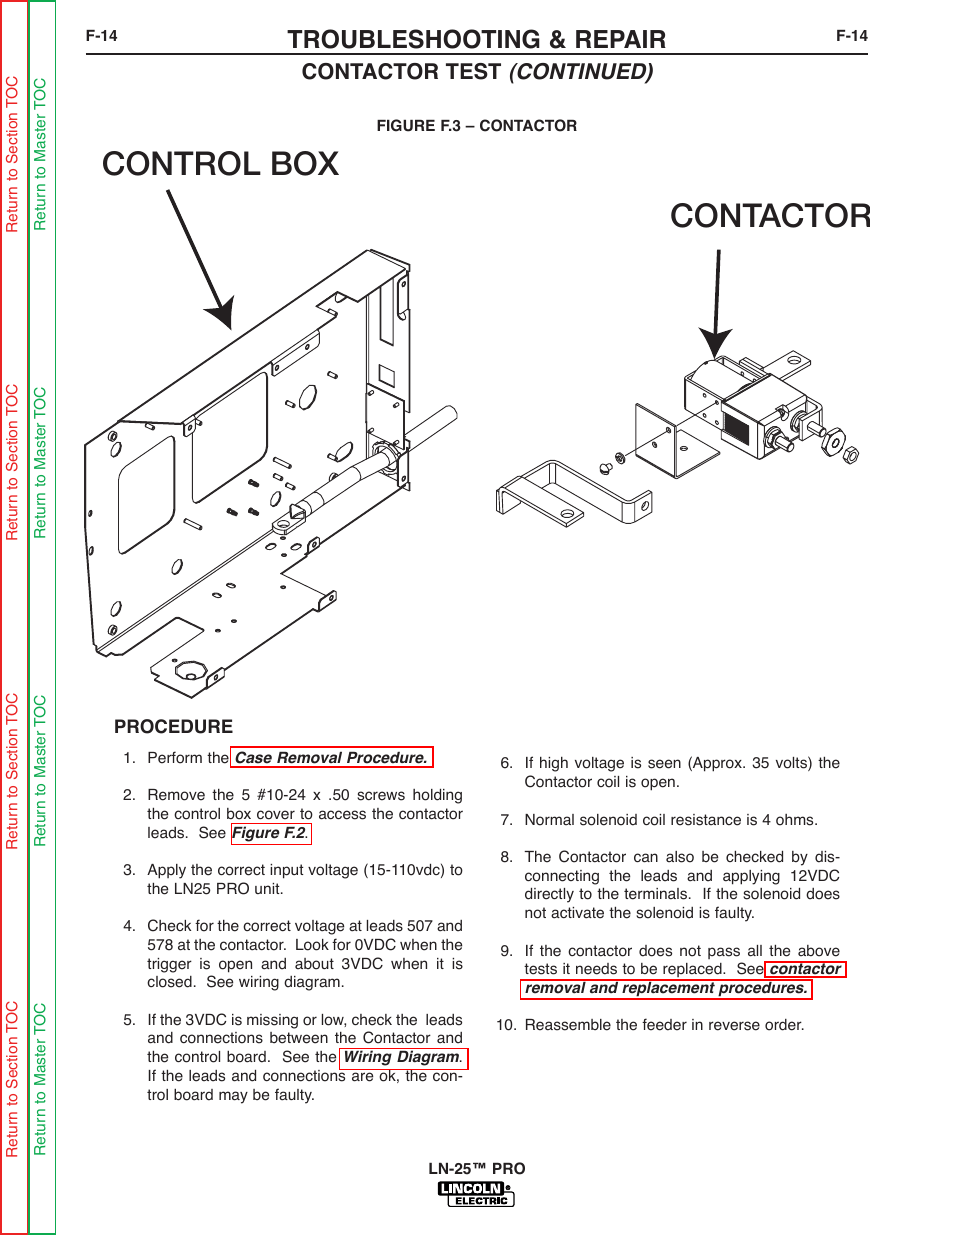 medium resolution of contactor control box troubleshooting repair contactor test continued lincoln electric ln 25 svm179 b user manual page 58 103